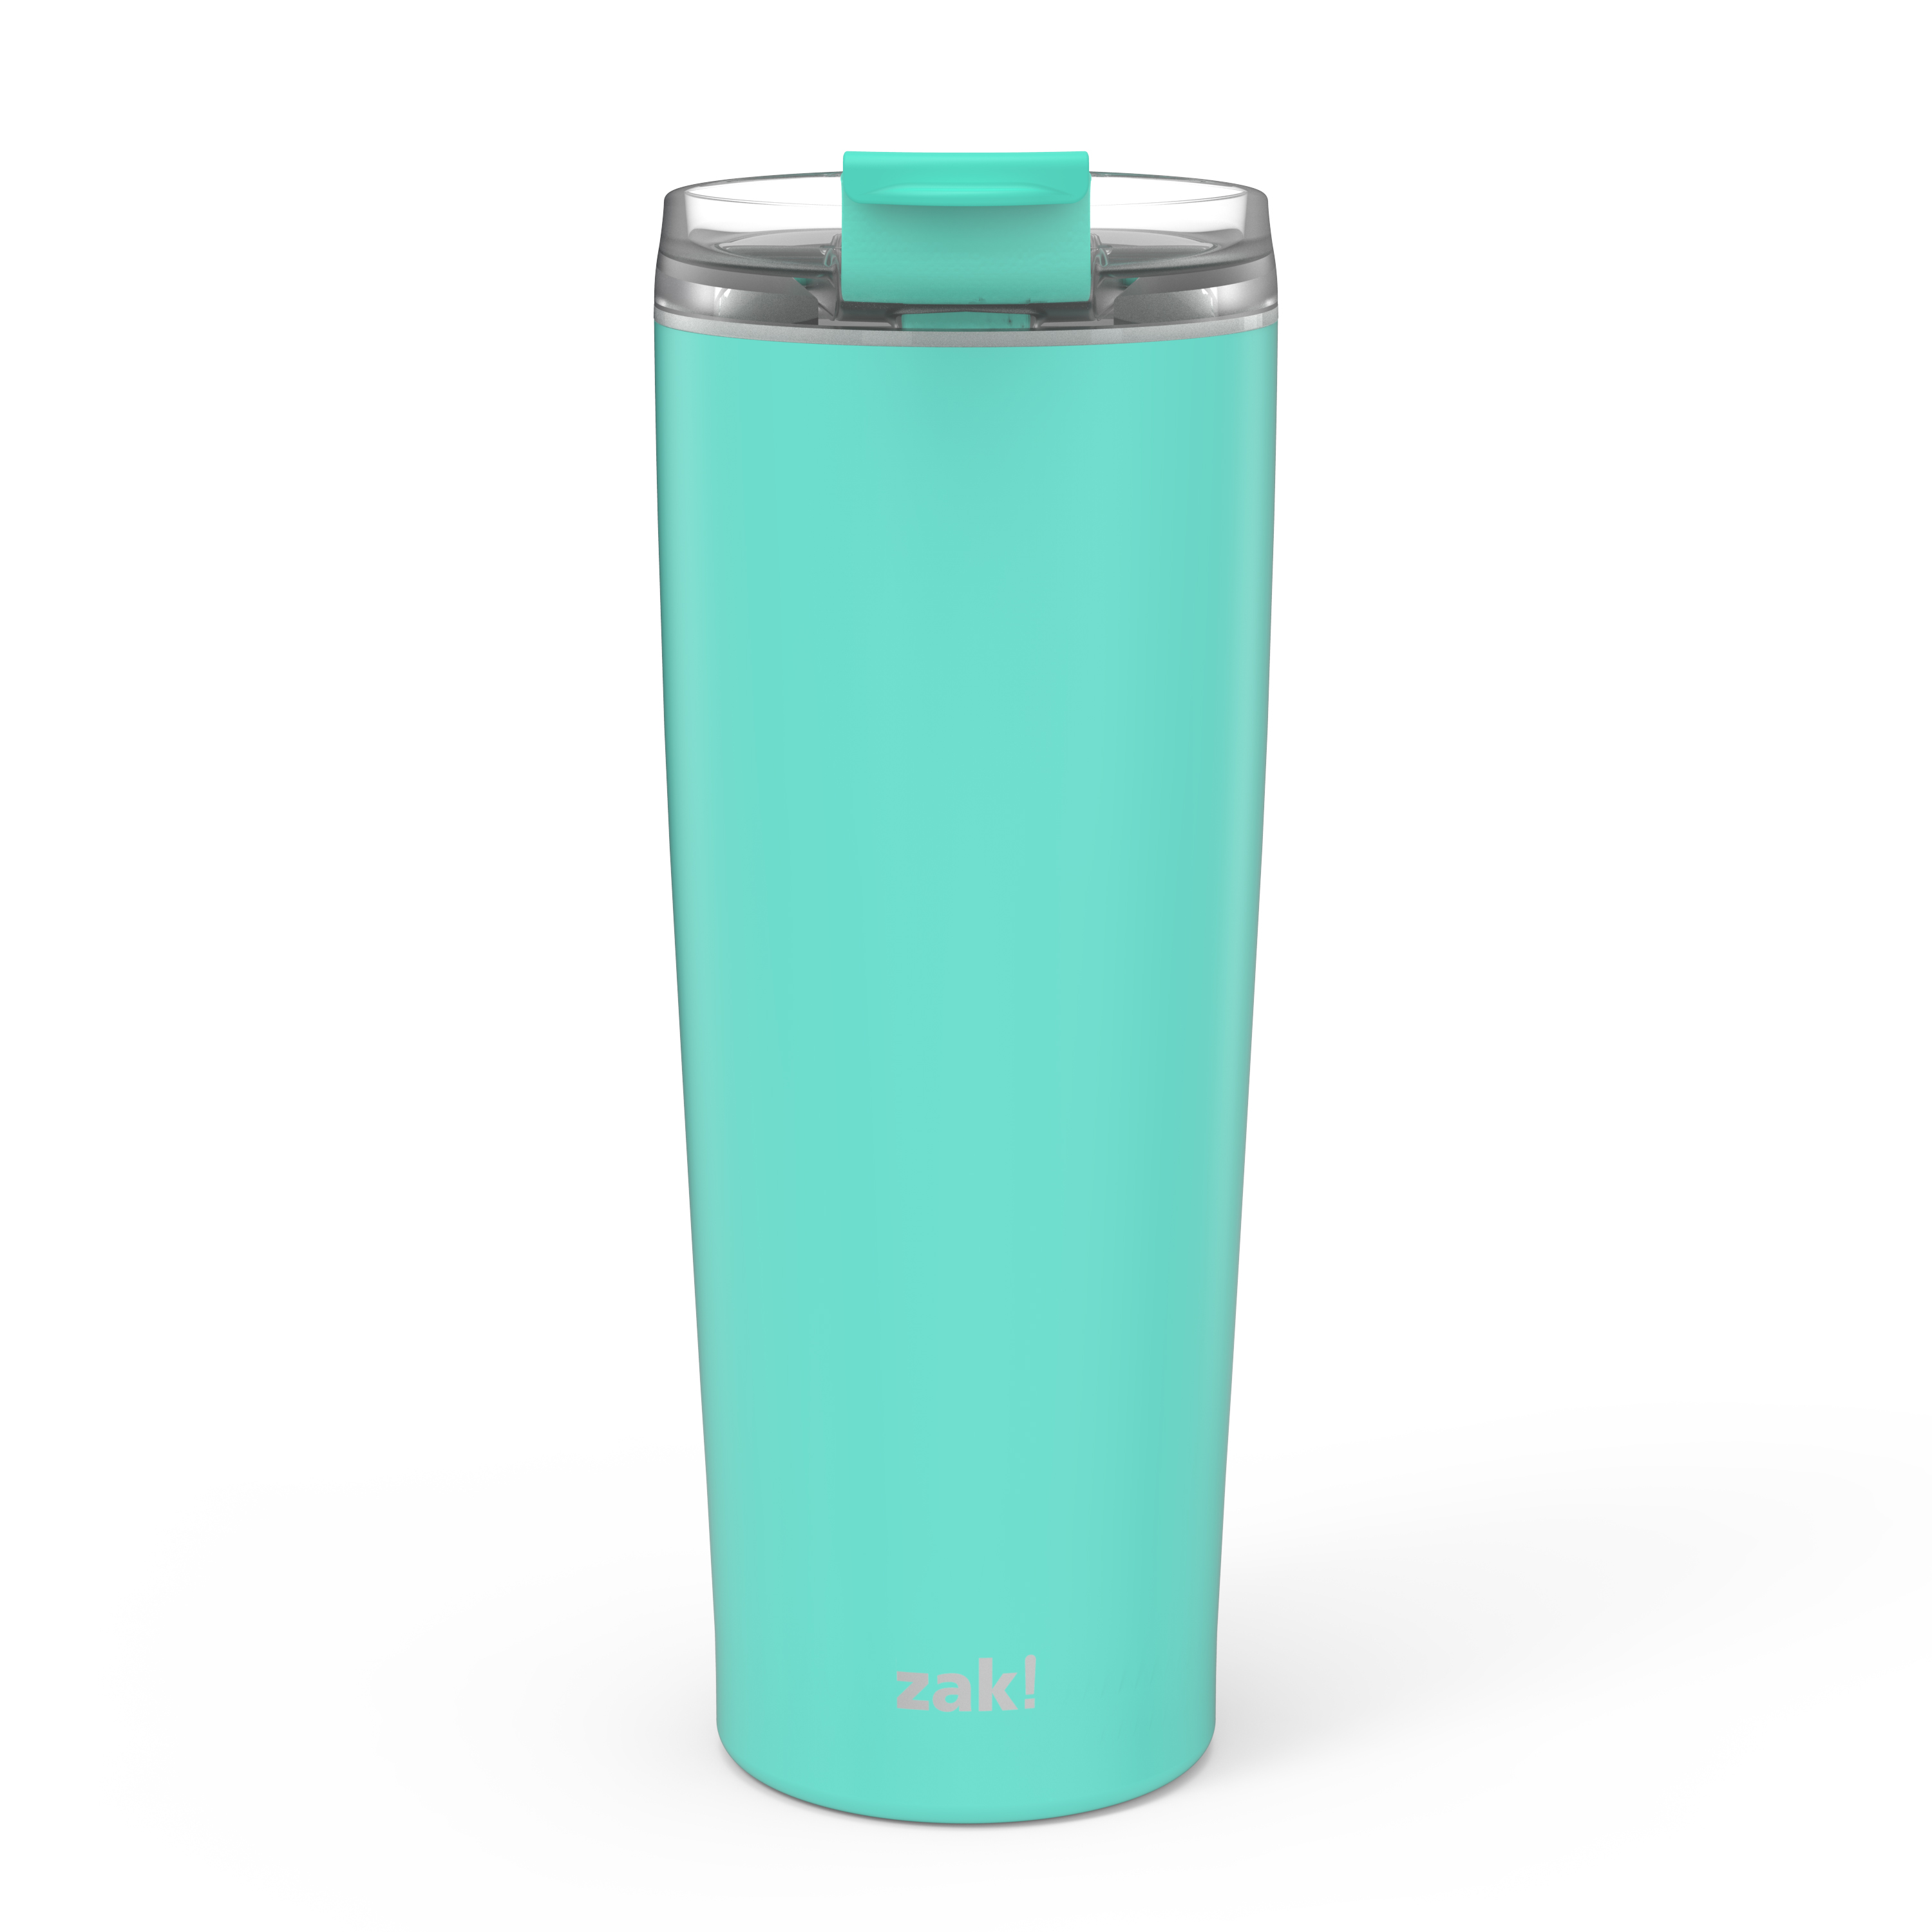 Aberdeen 24 ounce Vacuum Insulated Stainless Steel Tumbler, Green slideshow image 2